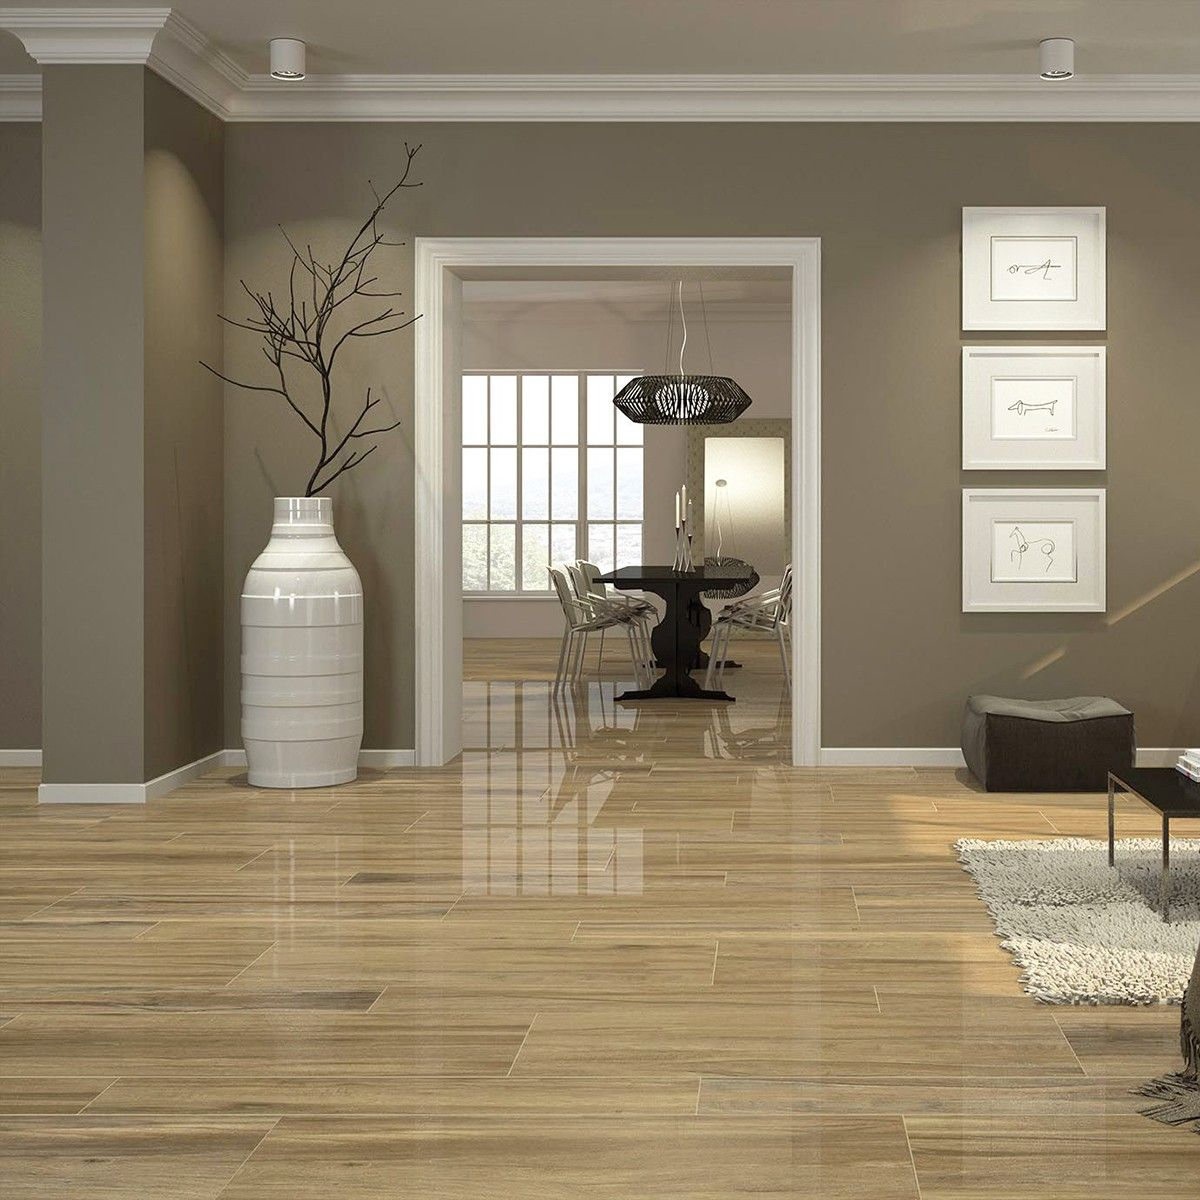 Crown tiles 120x20 hilton pine wood effect tiles wood effect hilton pine is a stunning gloss wood effect floor tile that is also available in various other colours view the range online now dailygadgetfo Choice Image